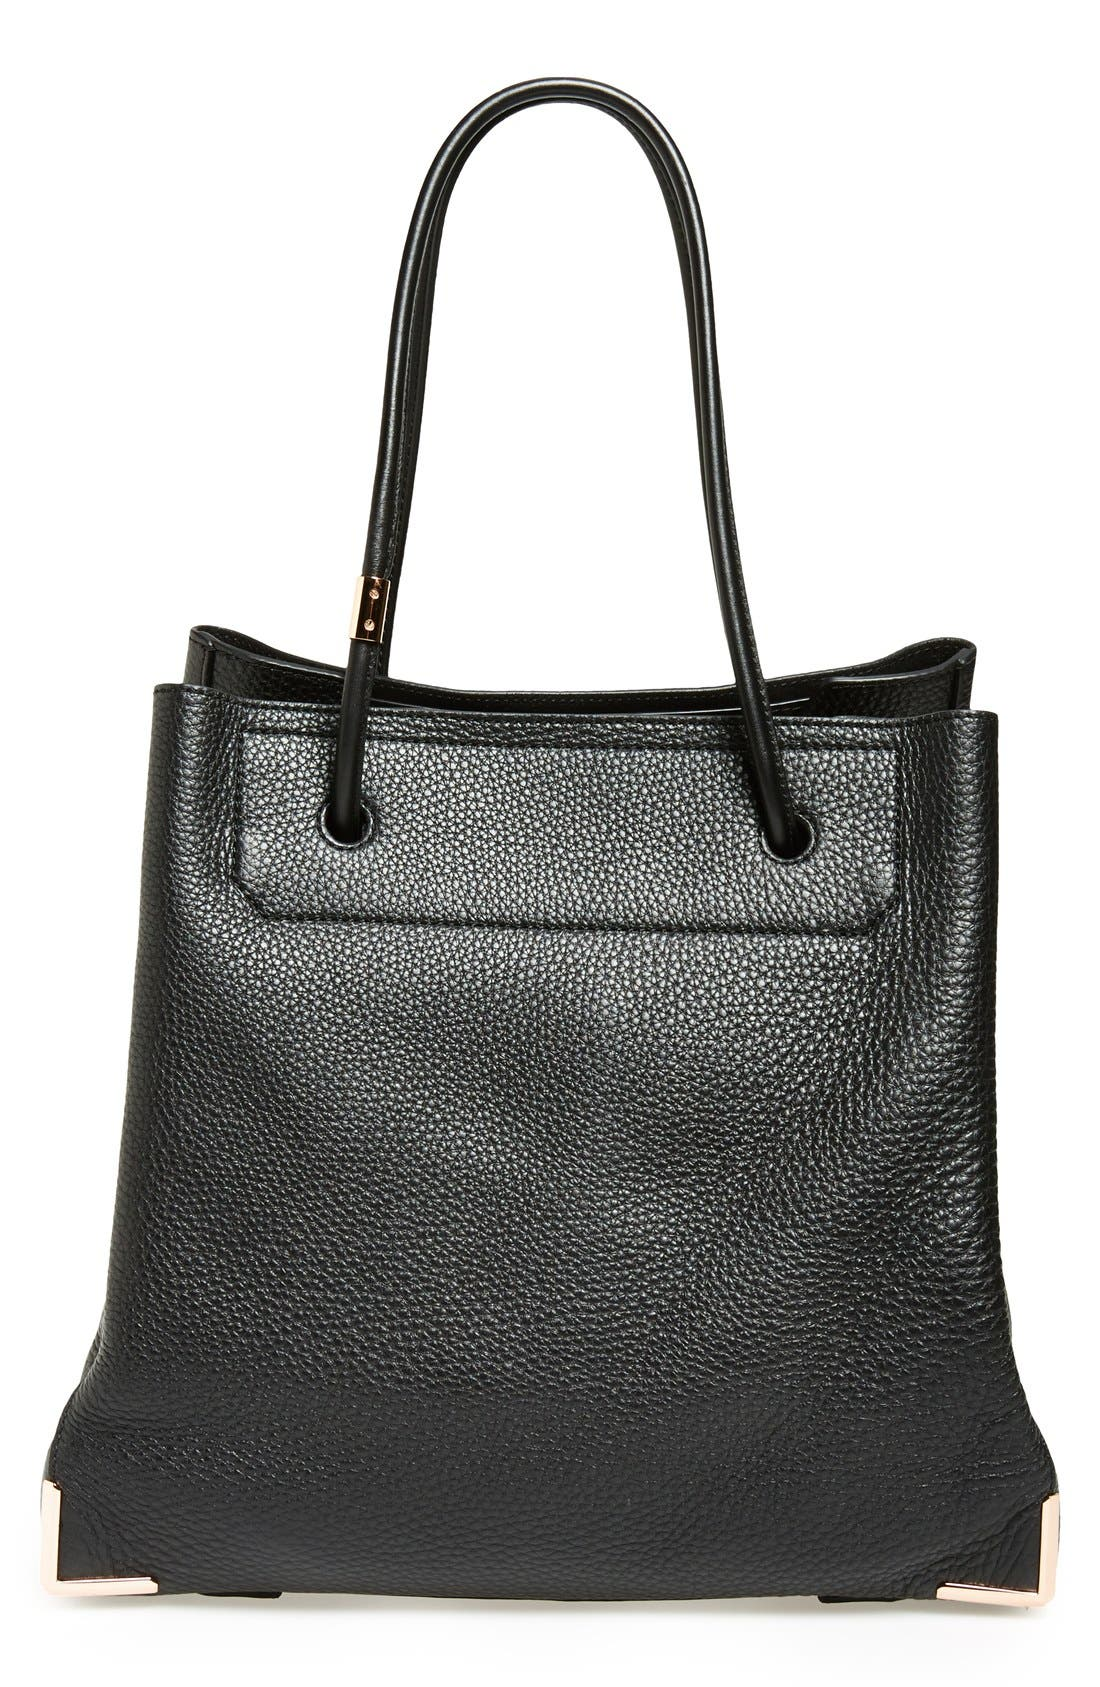 Alternate Image 1 Selected - Alexander Wang 'Prisma' Tote